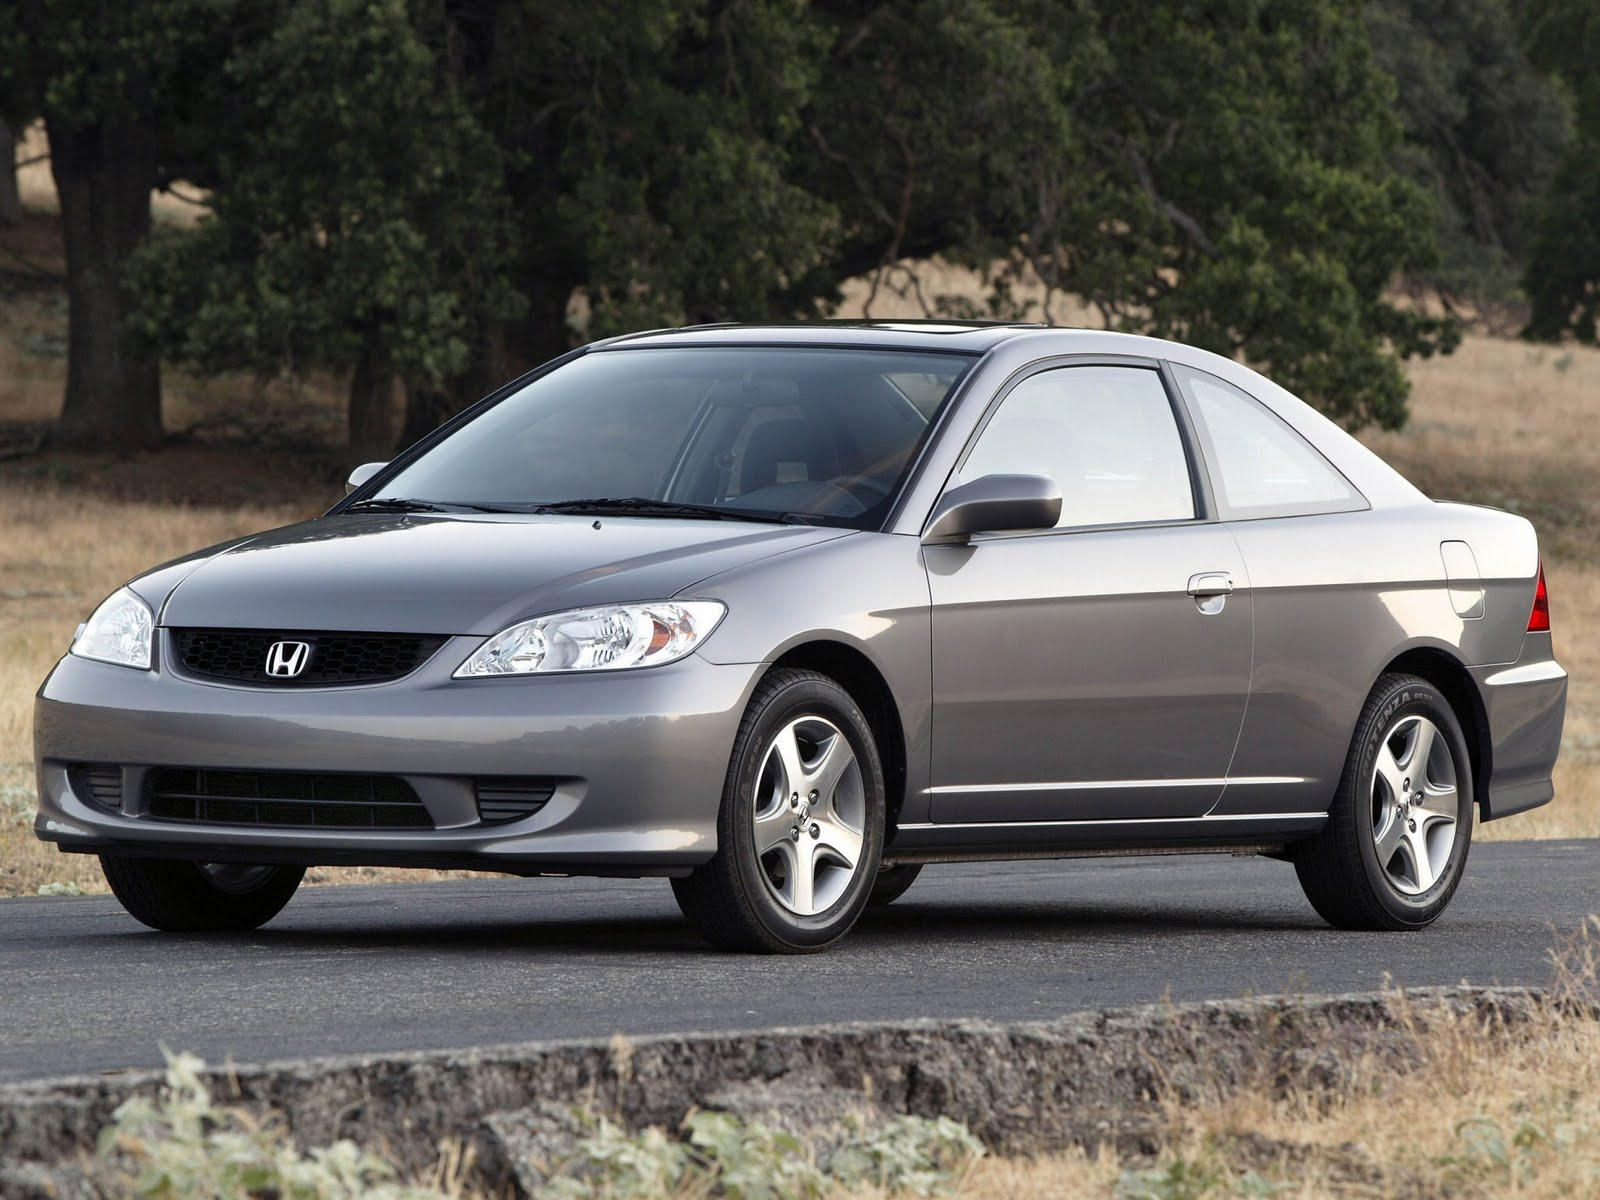 Honda Civic 2005 Best Cars For You